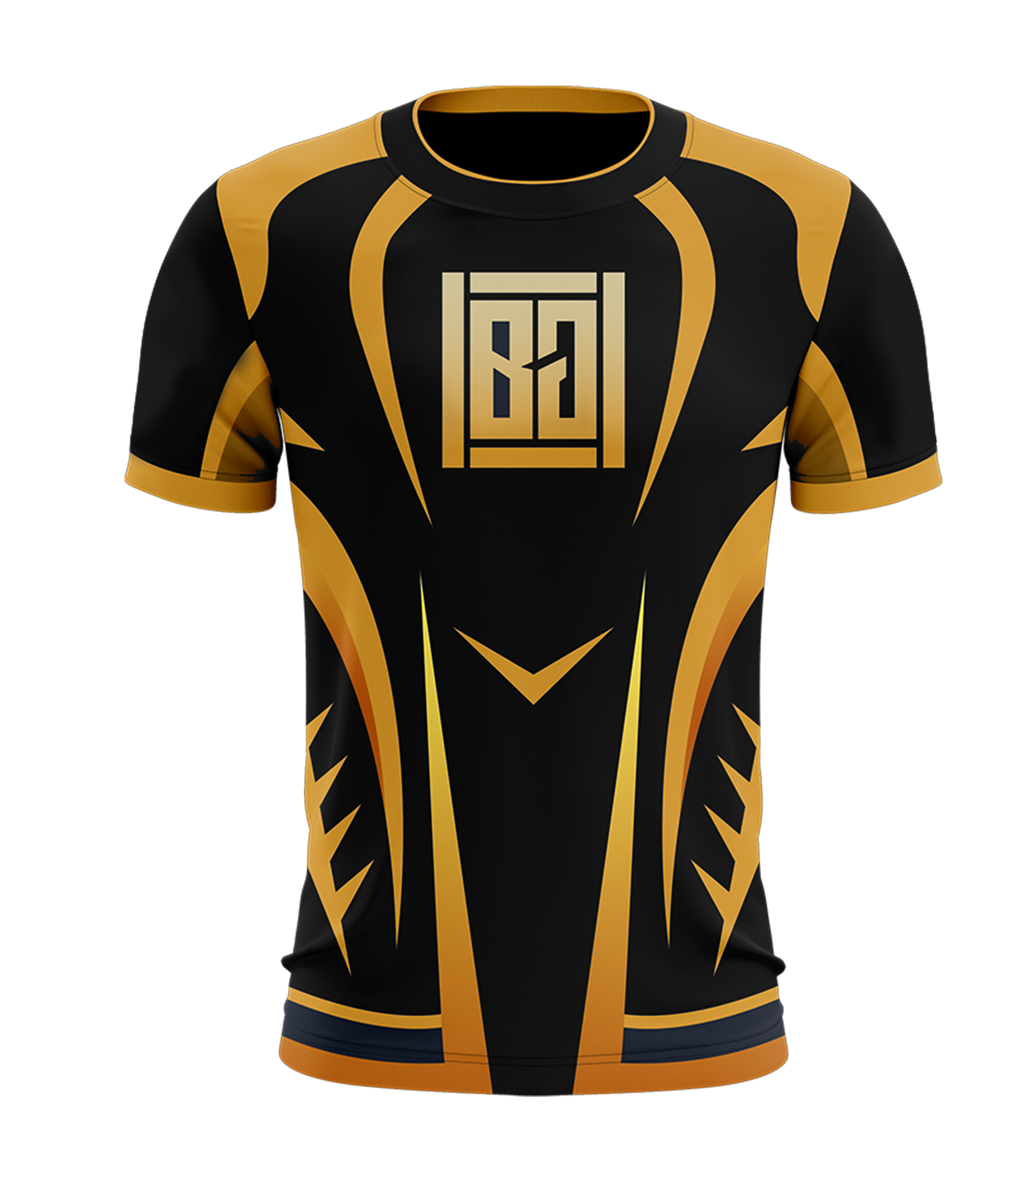 Bizarr Gaming Jersey